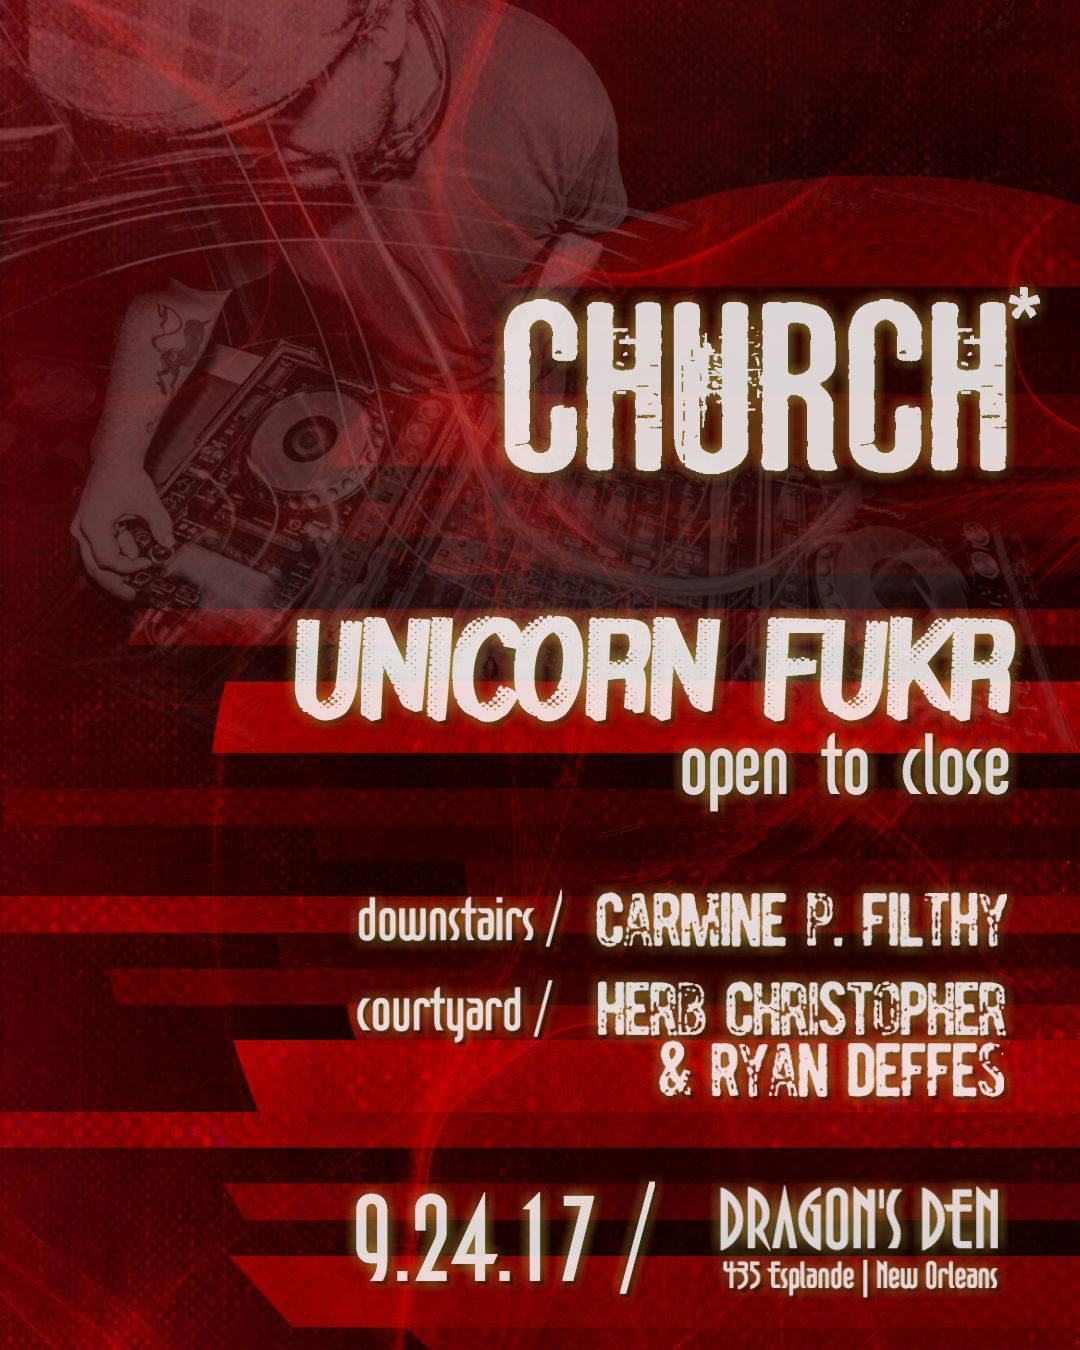 Bass Church Nola Unicorn Fukr 2017